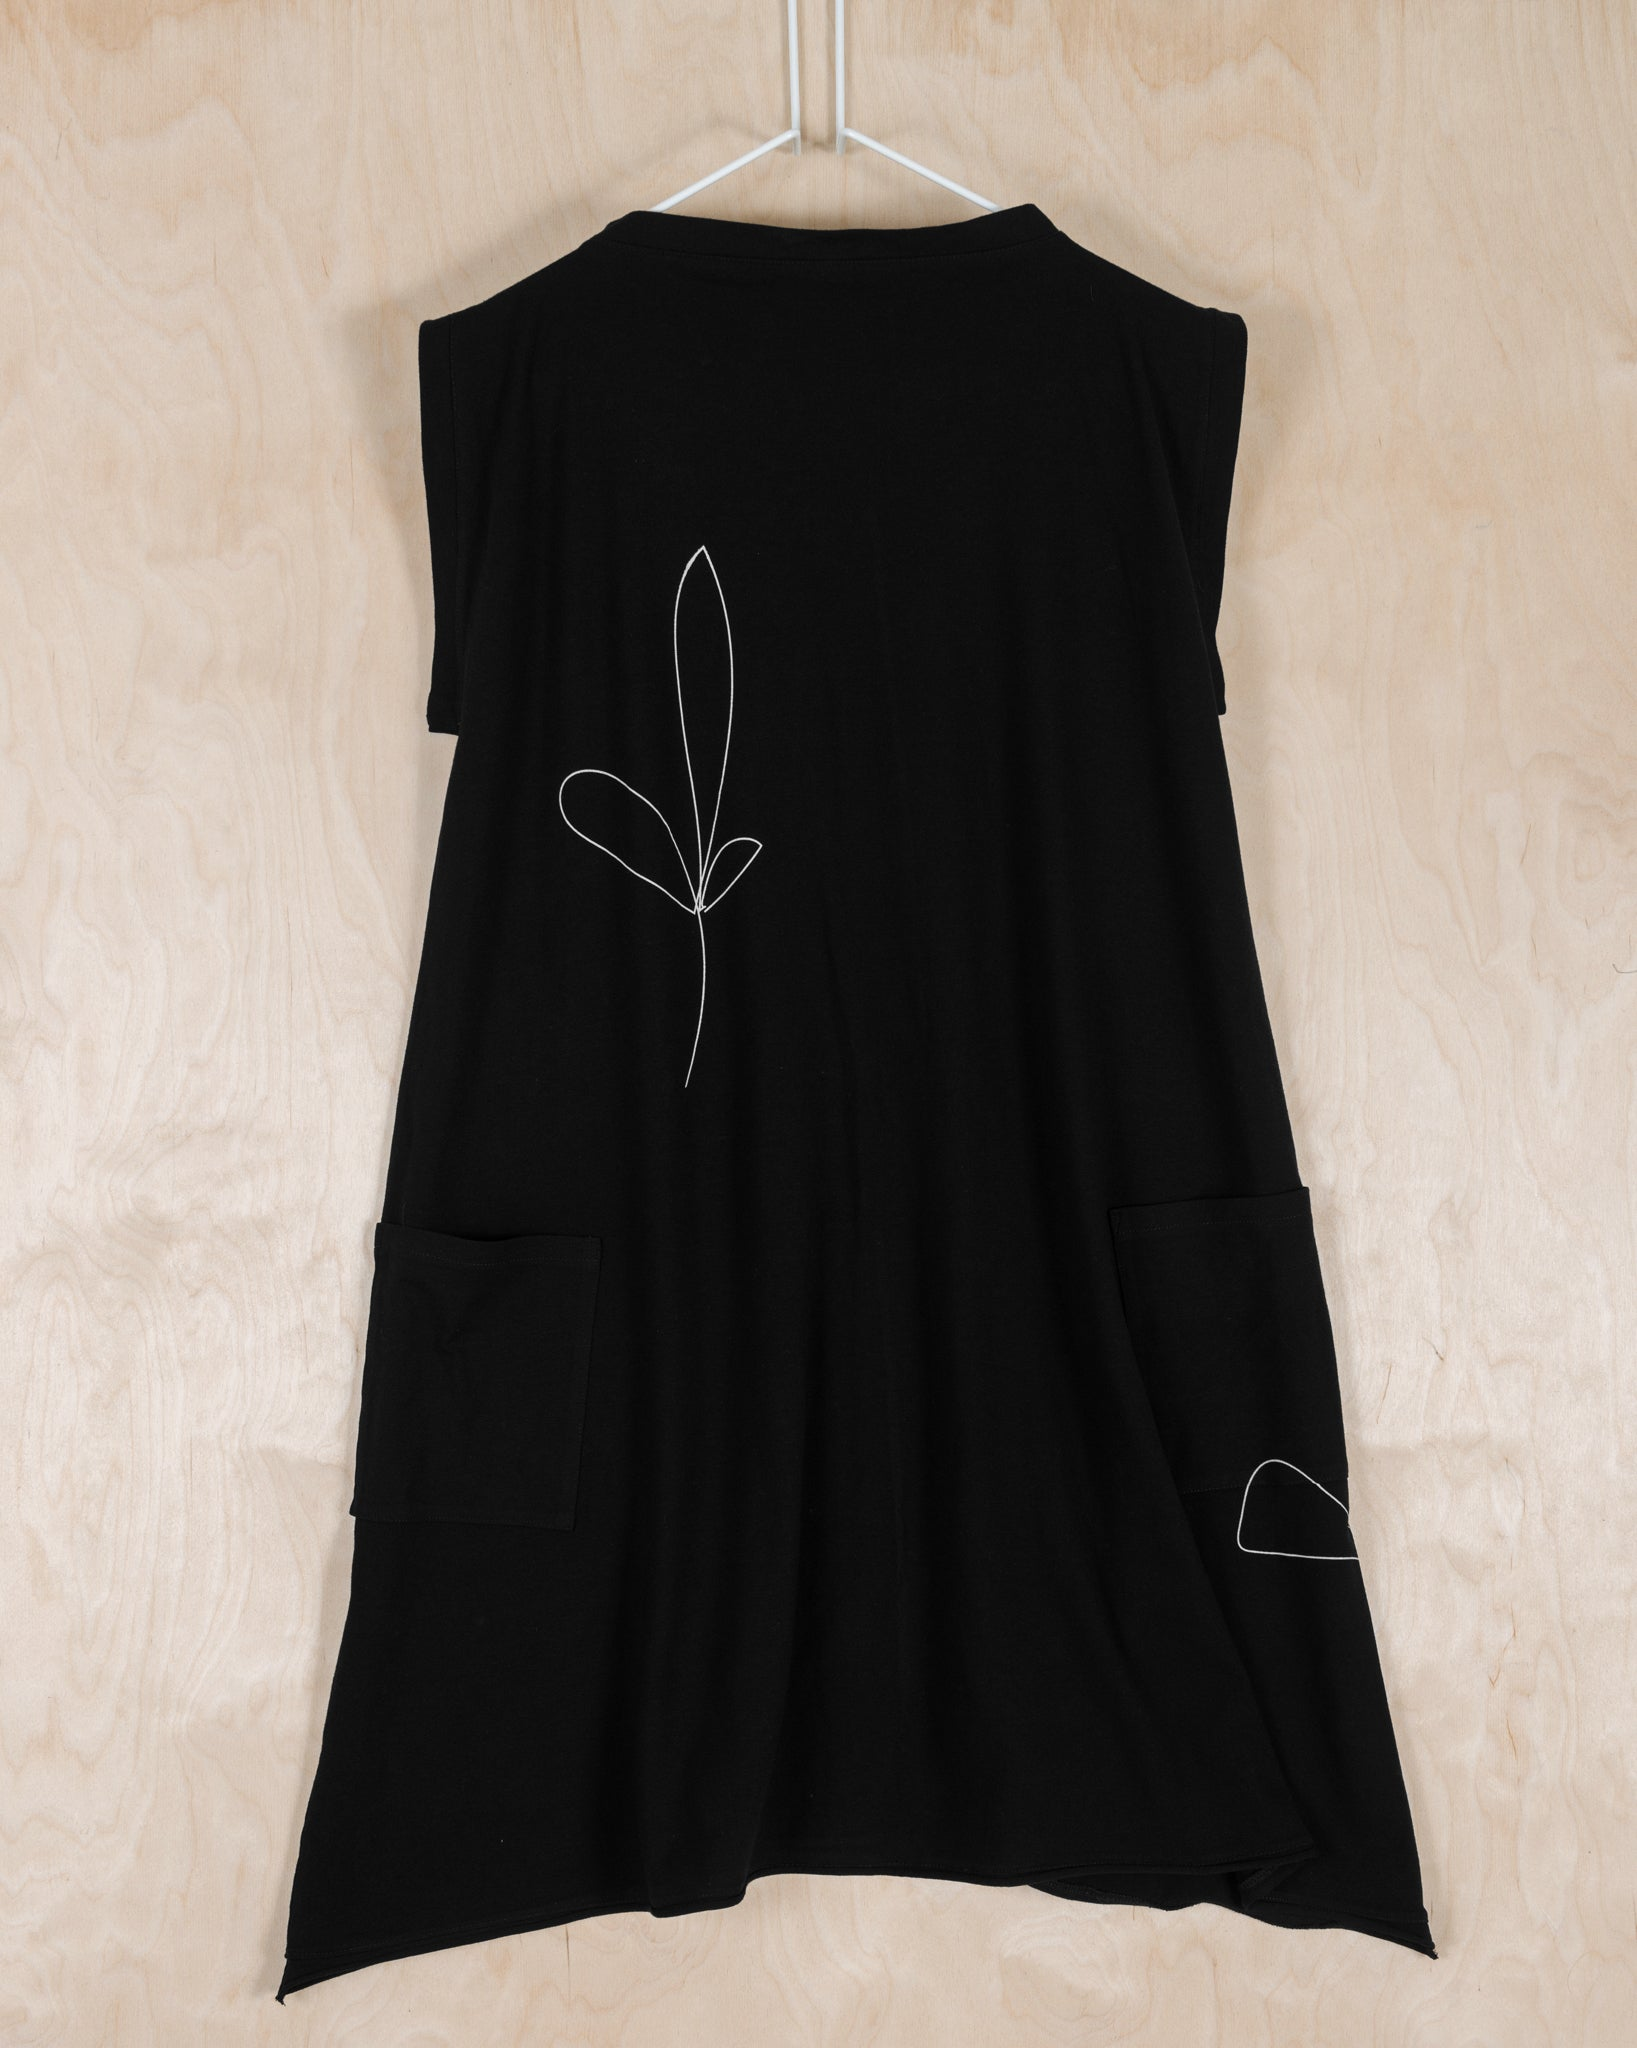 ZERO WASTE BLACK DRESS